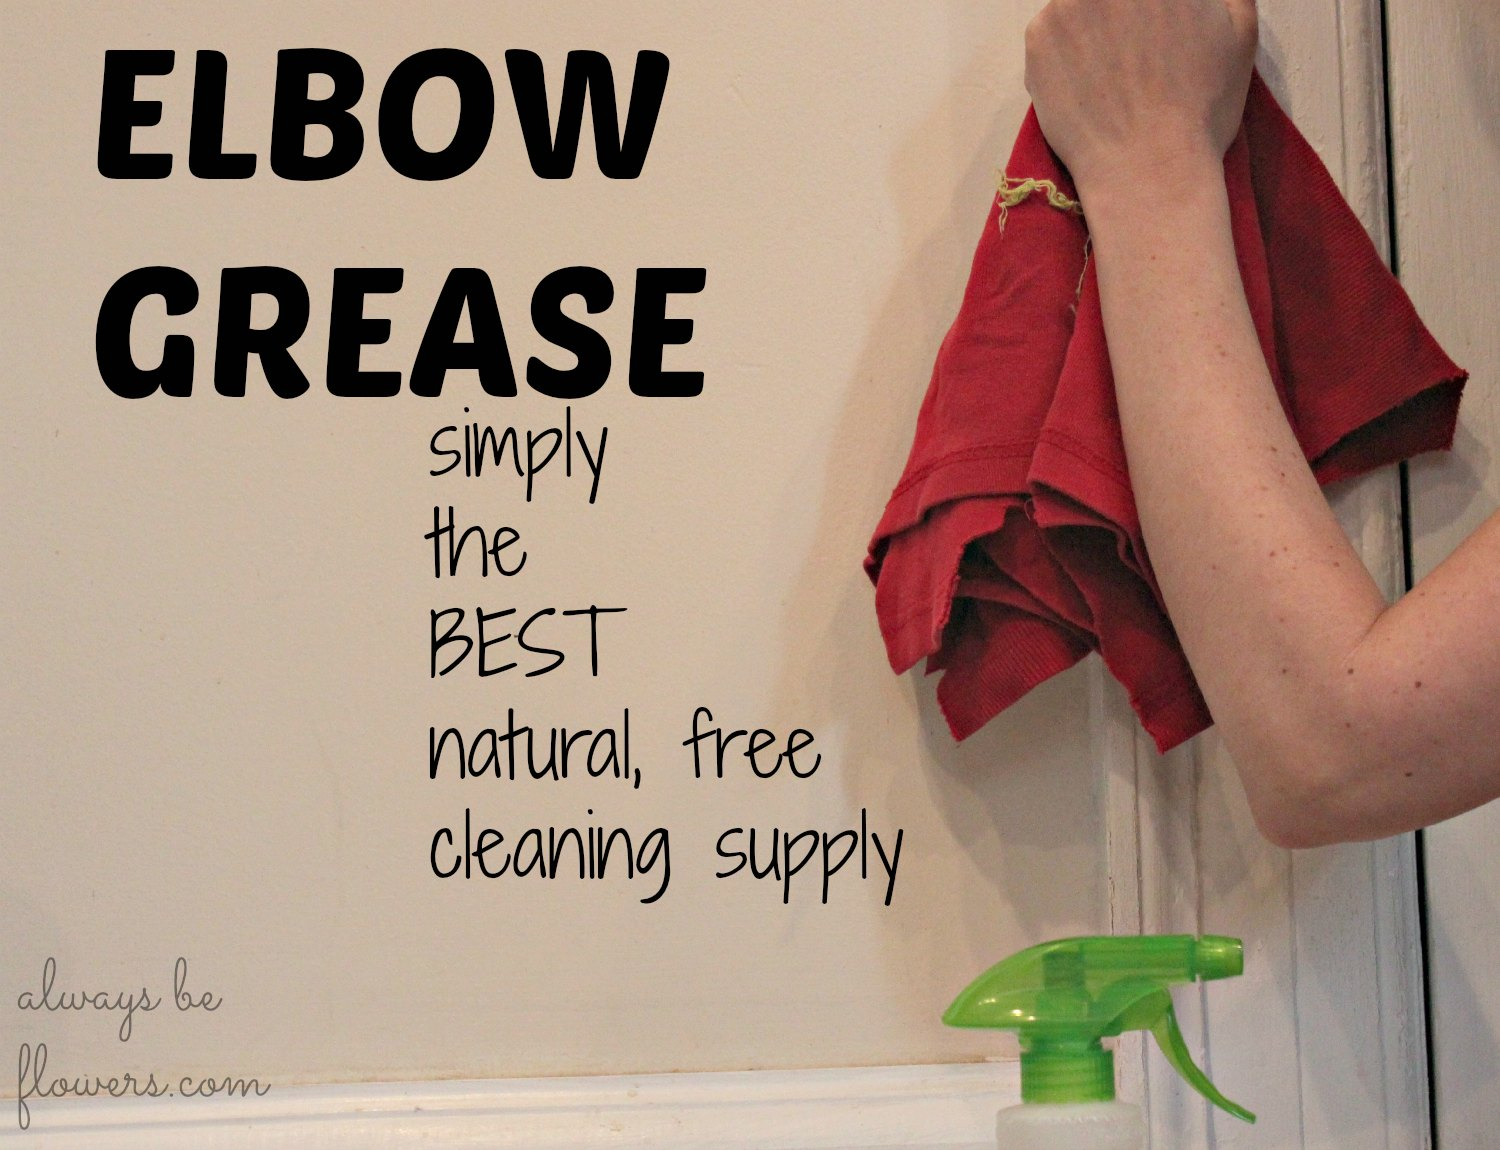 elbow-grease-cleaning.jpg